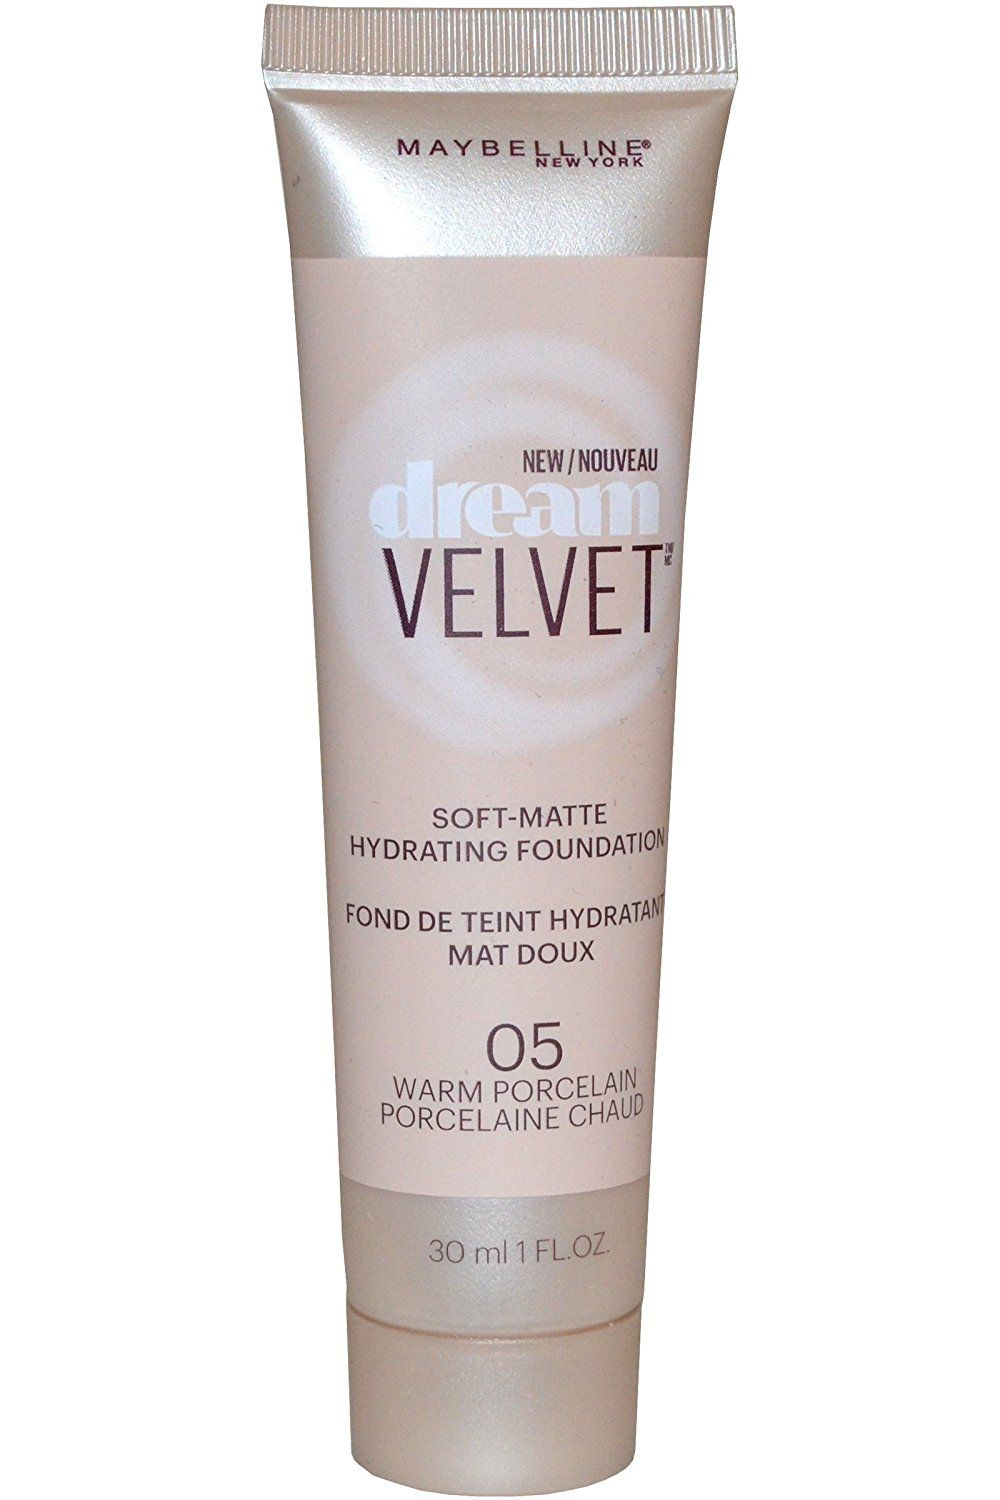 Maybelline New York Dream Velvet Soft Matte Foundation 30ml - 05 Warm Porcelain